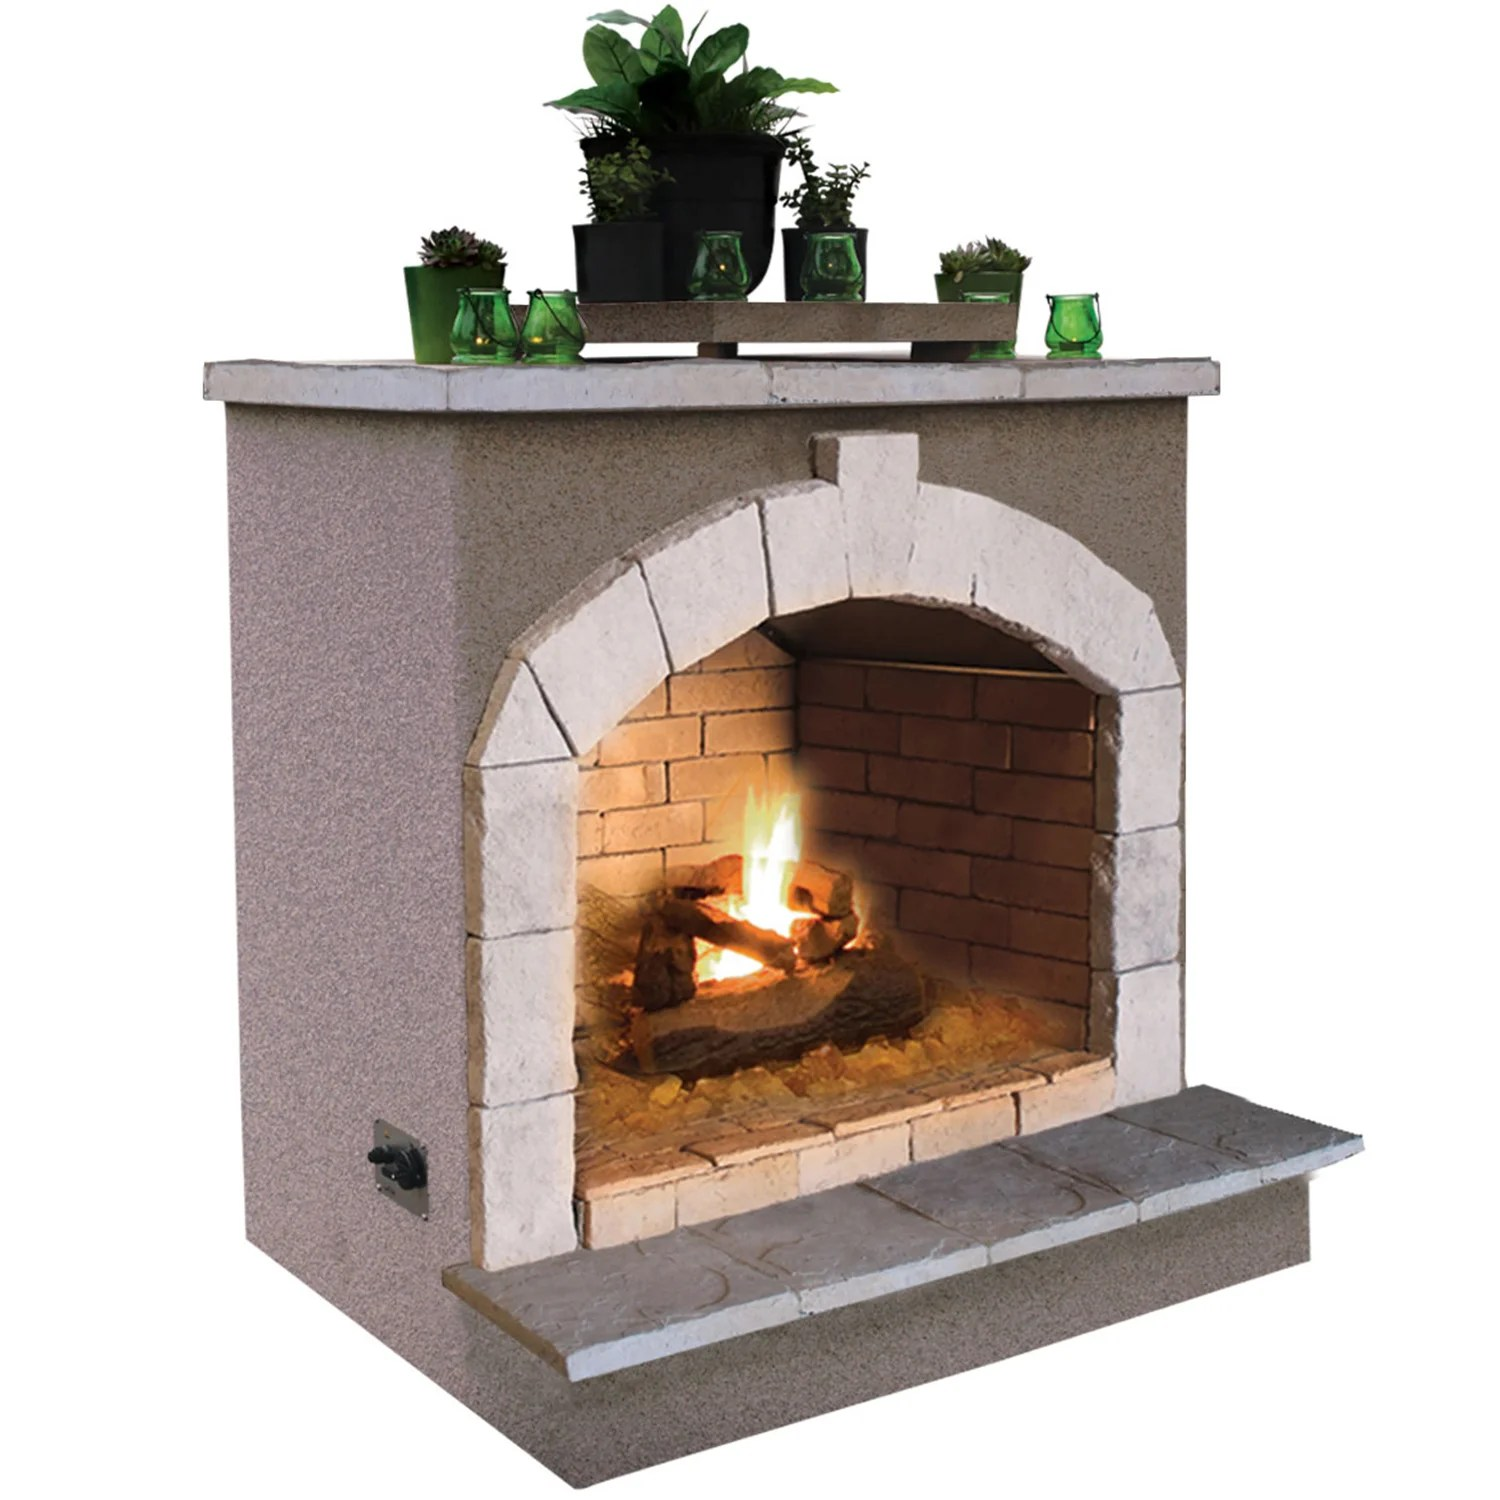 48 inch propane gas outdoor fireplace